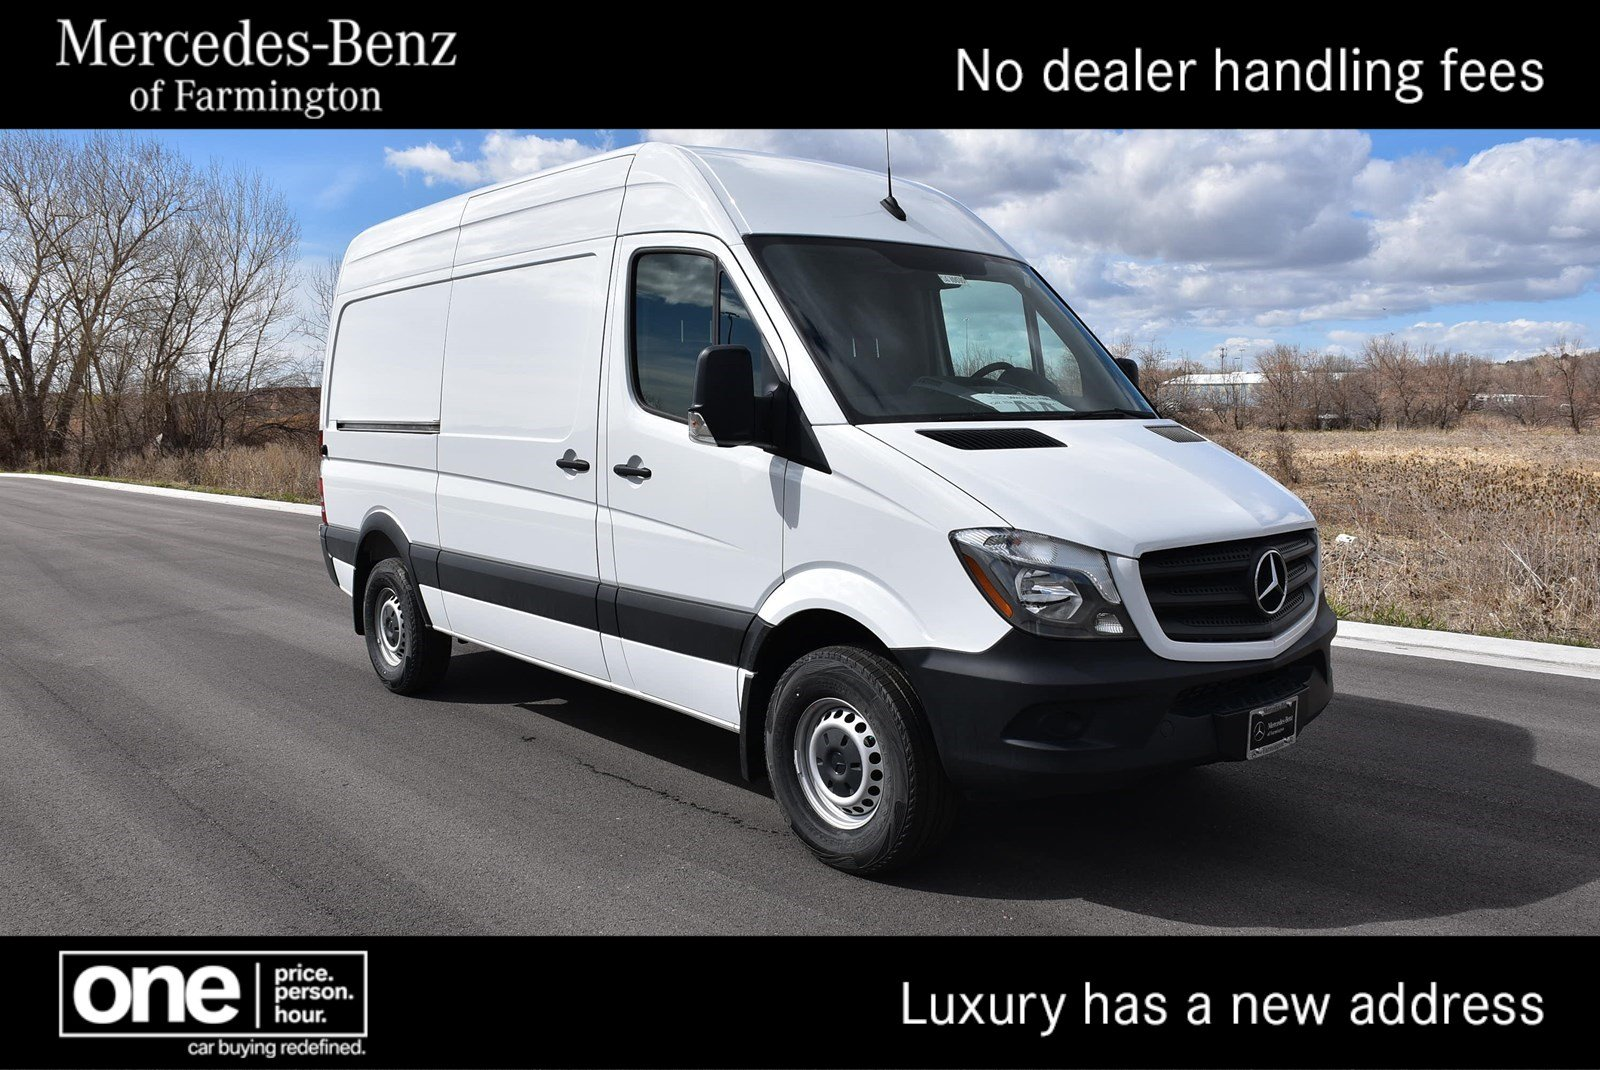 New 2017 Mercedes Benz Sprinter 2500 Cargo Van In 08 Fuel Filter Location